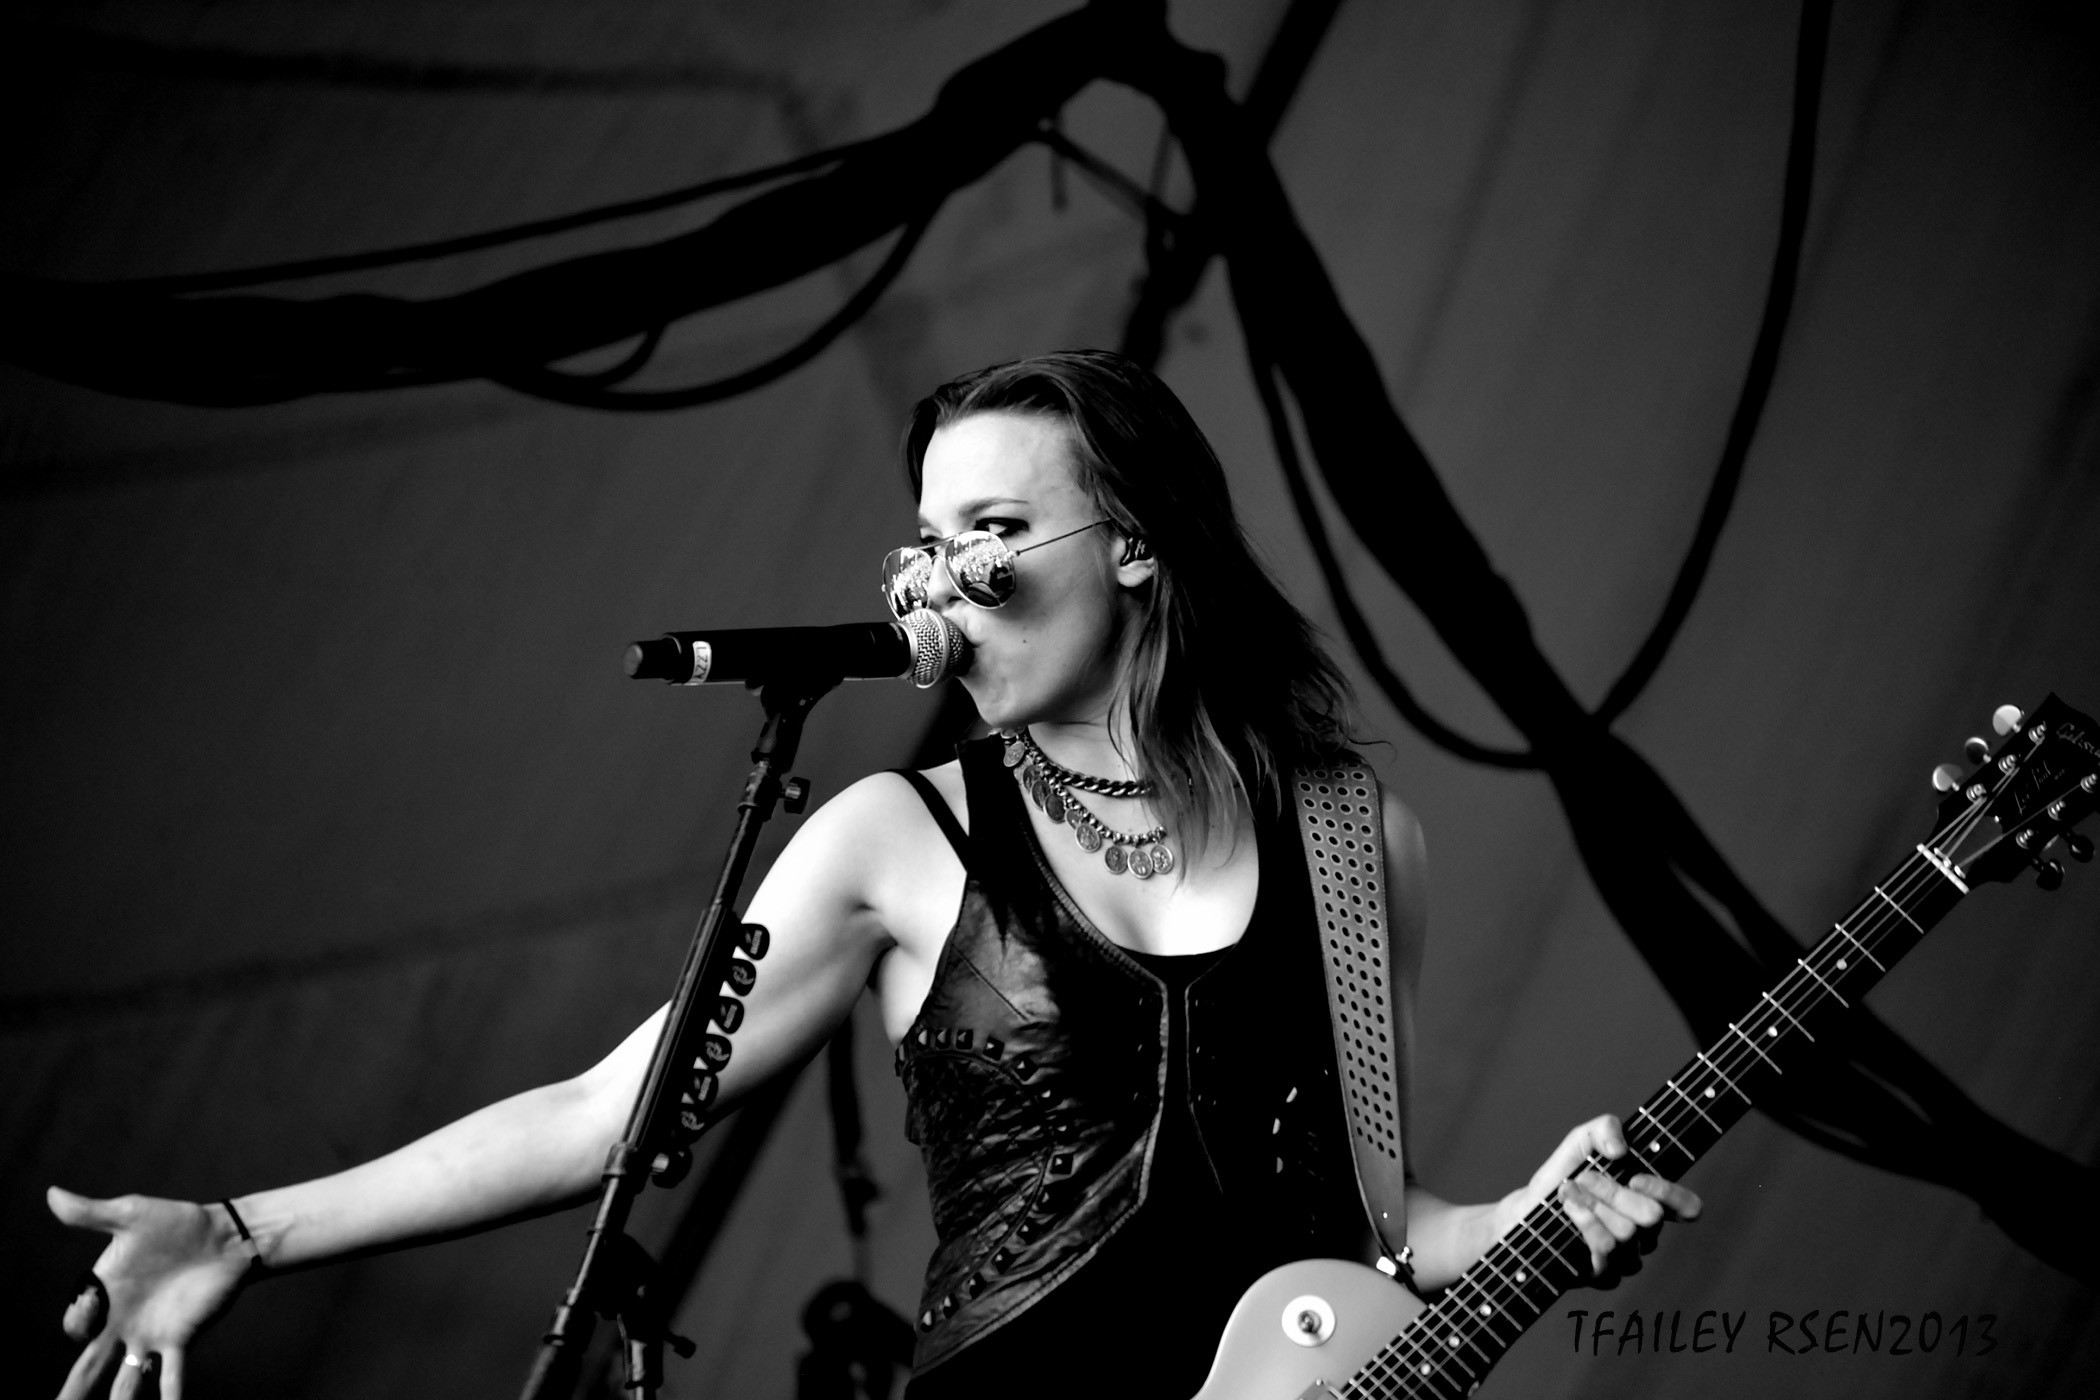 2100x1400 Lzzy Hale | Favorite Bands/Artists | Pinterest | Lzzy hale, Halestorm and  Musicians